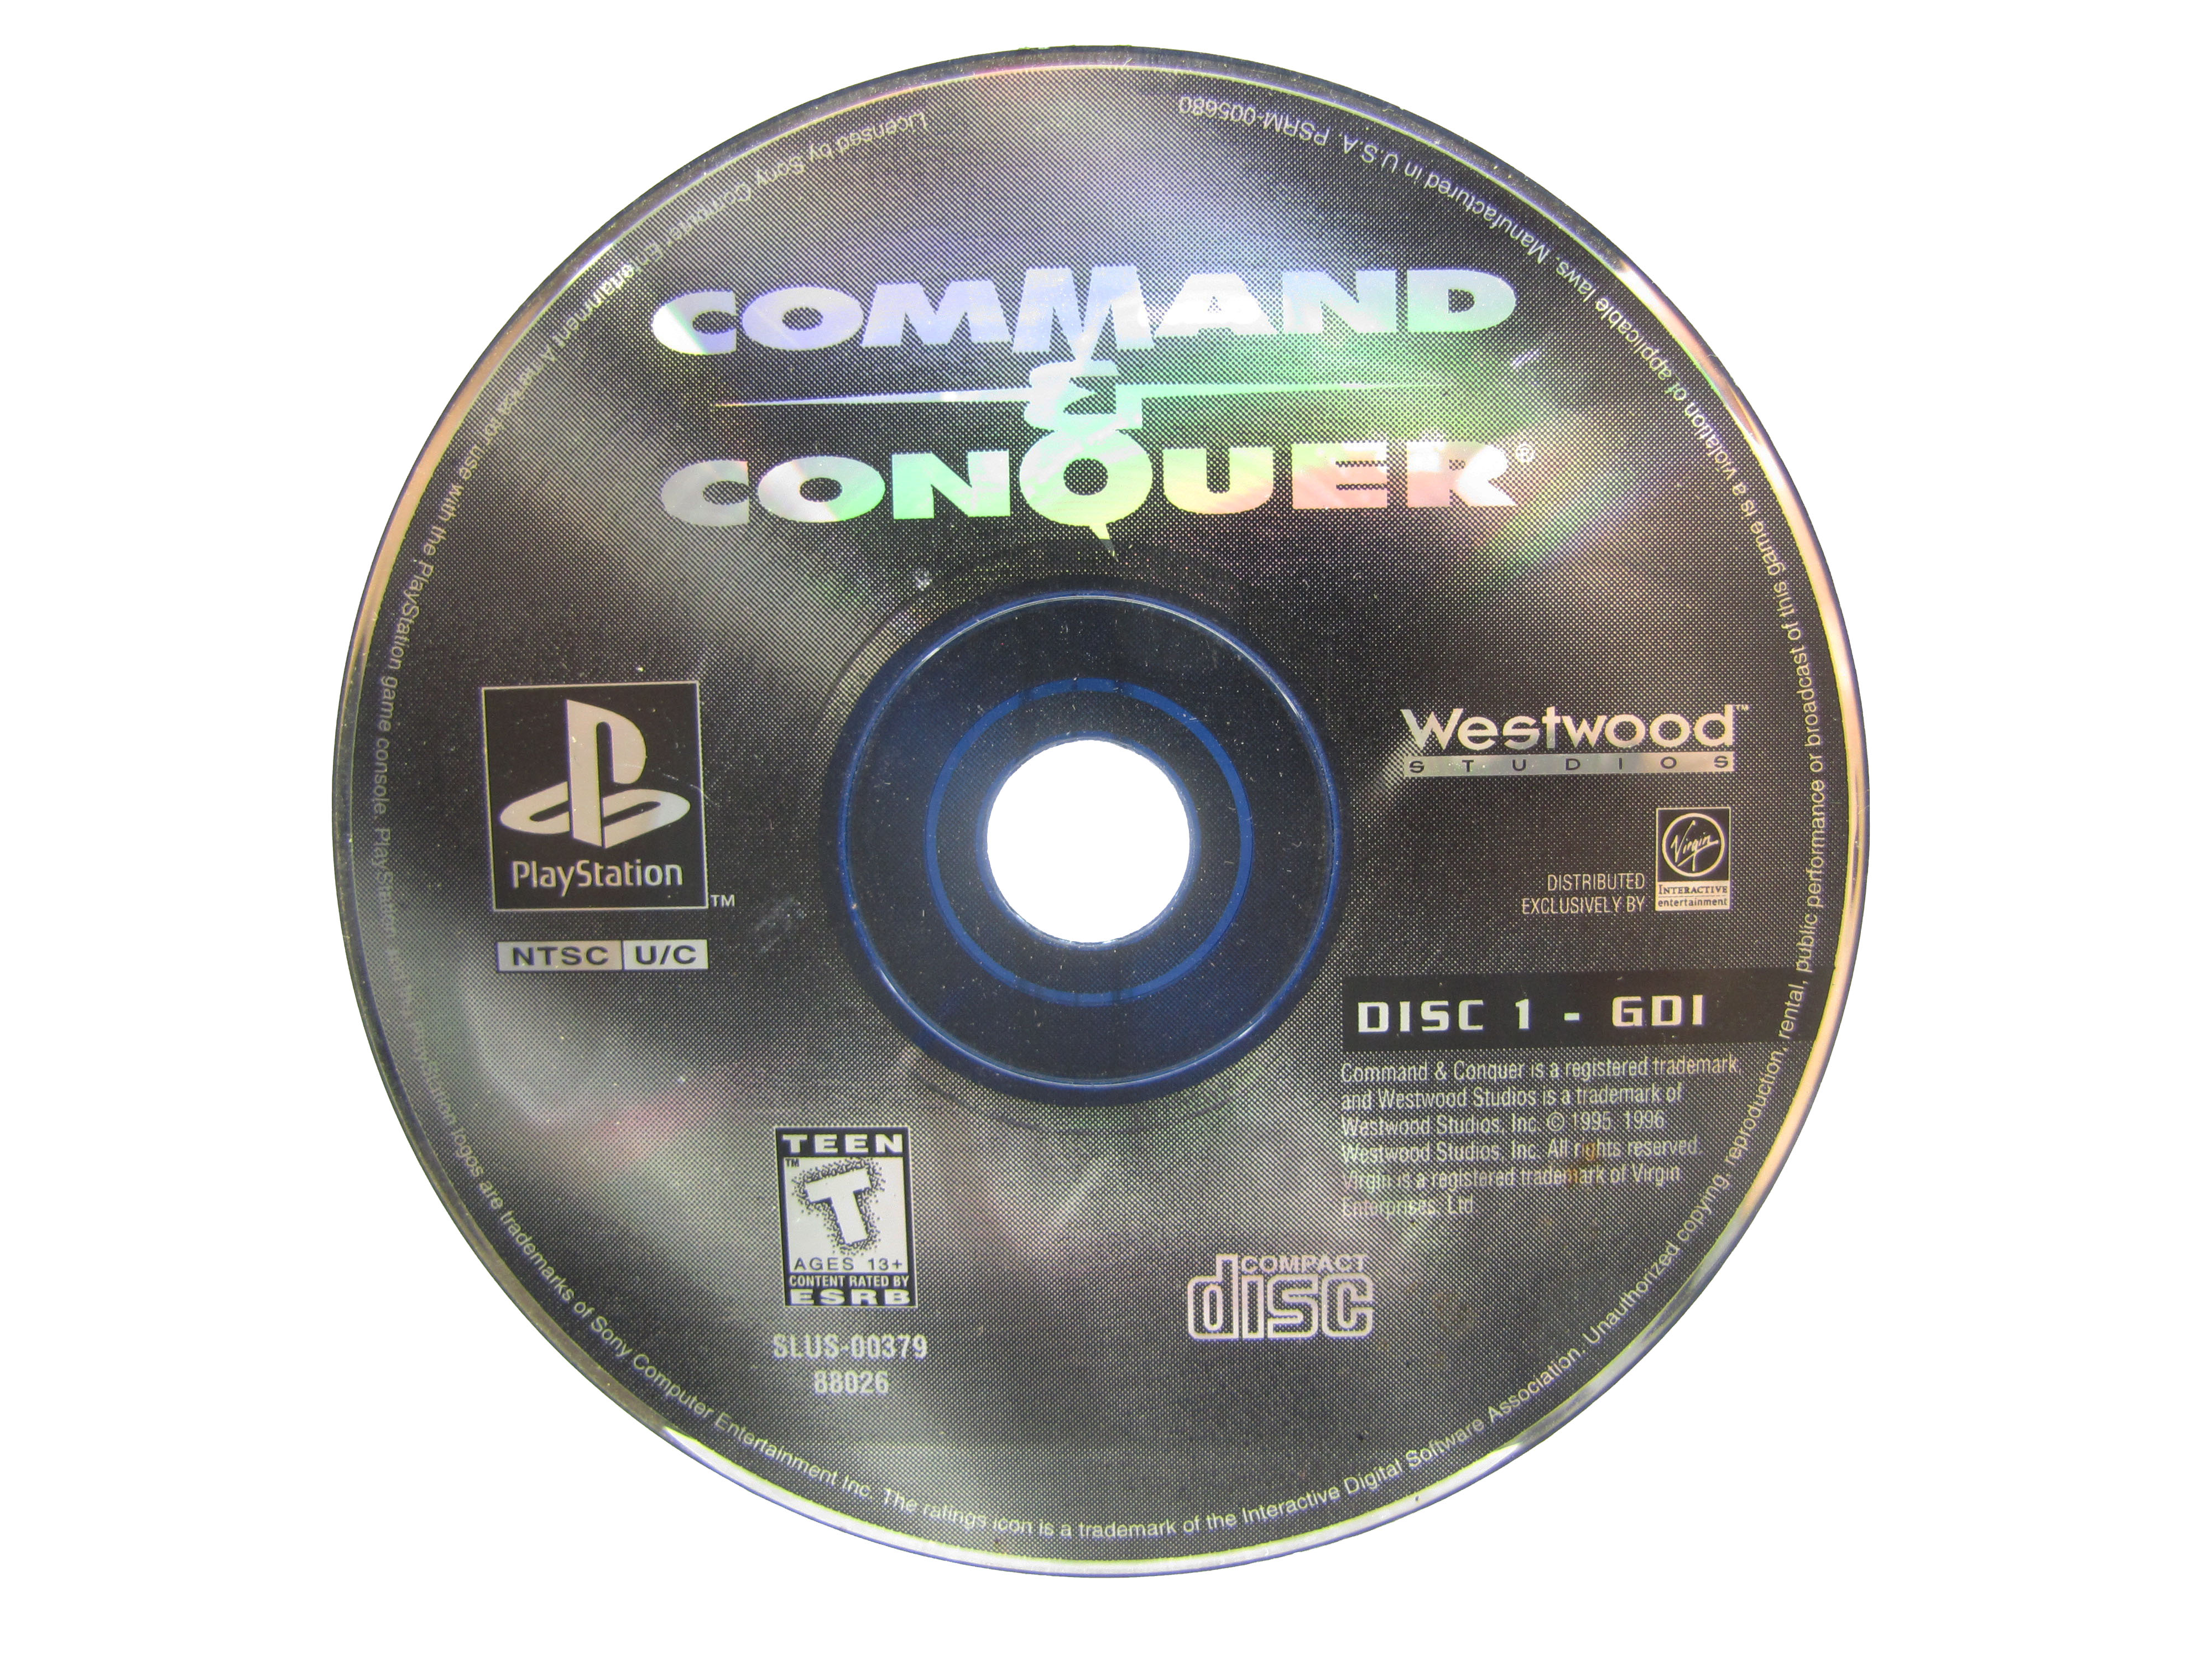 PS1 Command & Conquer Disc 1 Disc Only - 1995